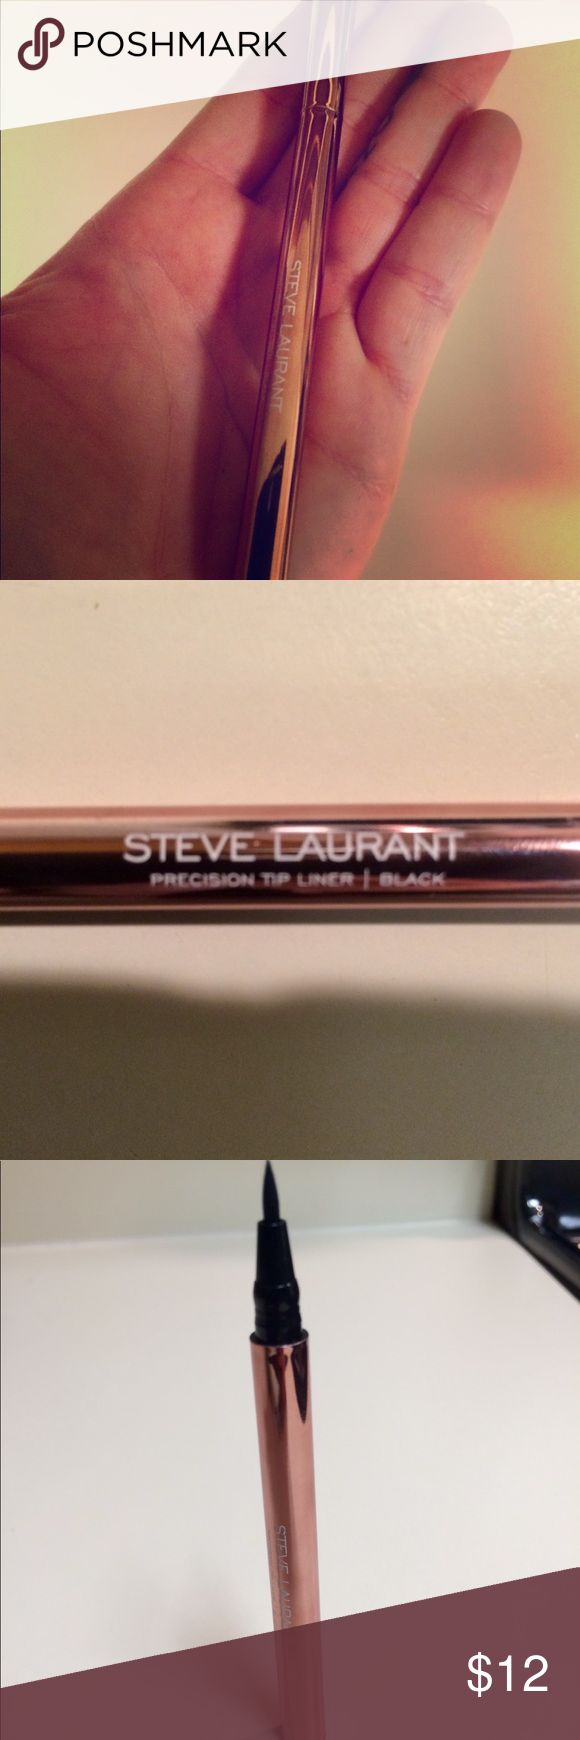 🆕Precision tip black liquid eyeliner Brand new got in my monthly beauty box. Retail is over 10$. Full size. Steve Laurant Makeup Eyeliner